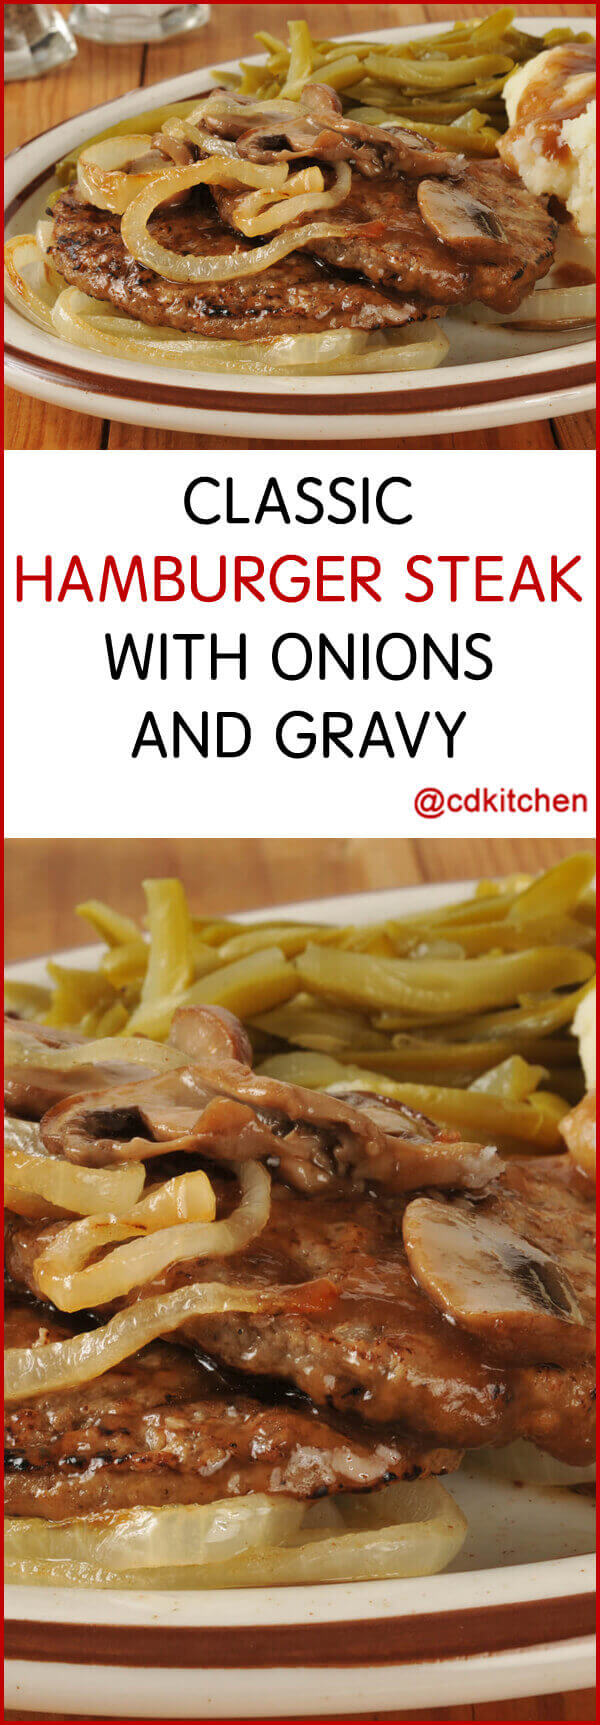 Classic Hamburger Steak With Onions And Gravy Recipe ...